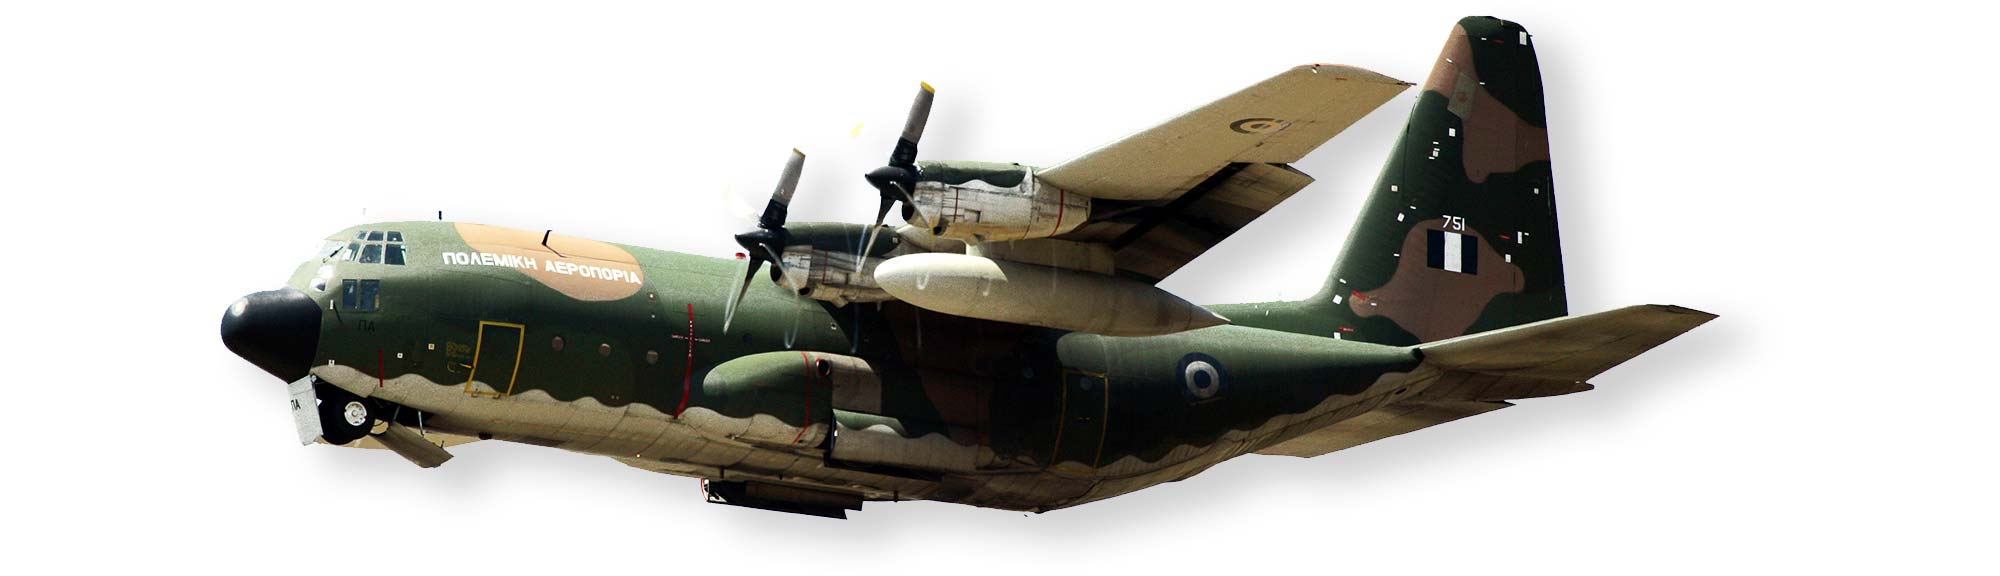 small resolution of the t56 is a single shaft modular design turboprop engine the gearbox has two stages of gear reduction features a propeller brake and is connected to